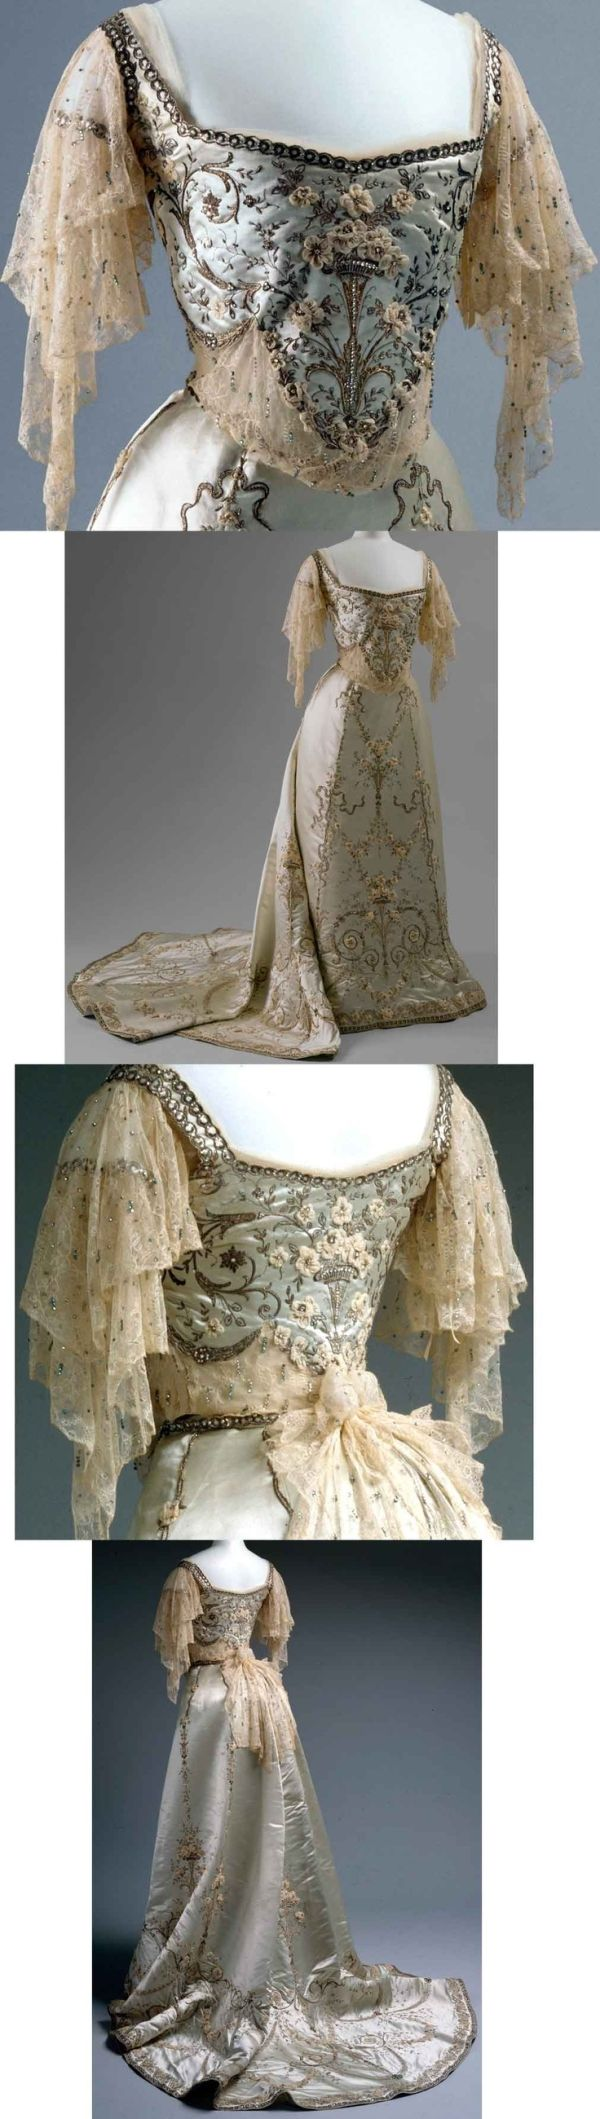 Worth ballgown, 1900-1905. Silk and cotton with metallic thread, glass, and metal ornamentation. by bronzebaroness